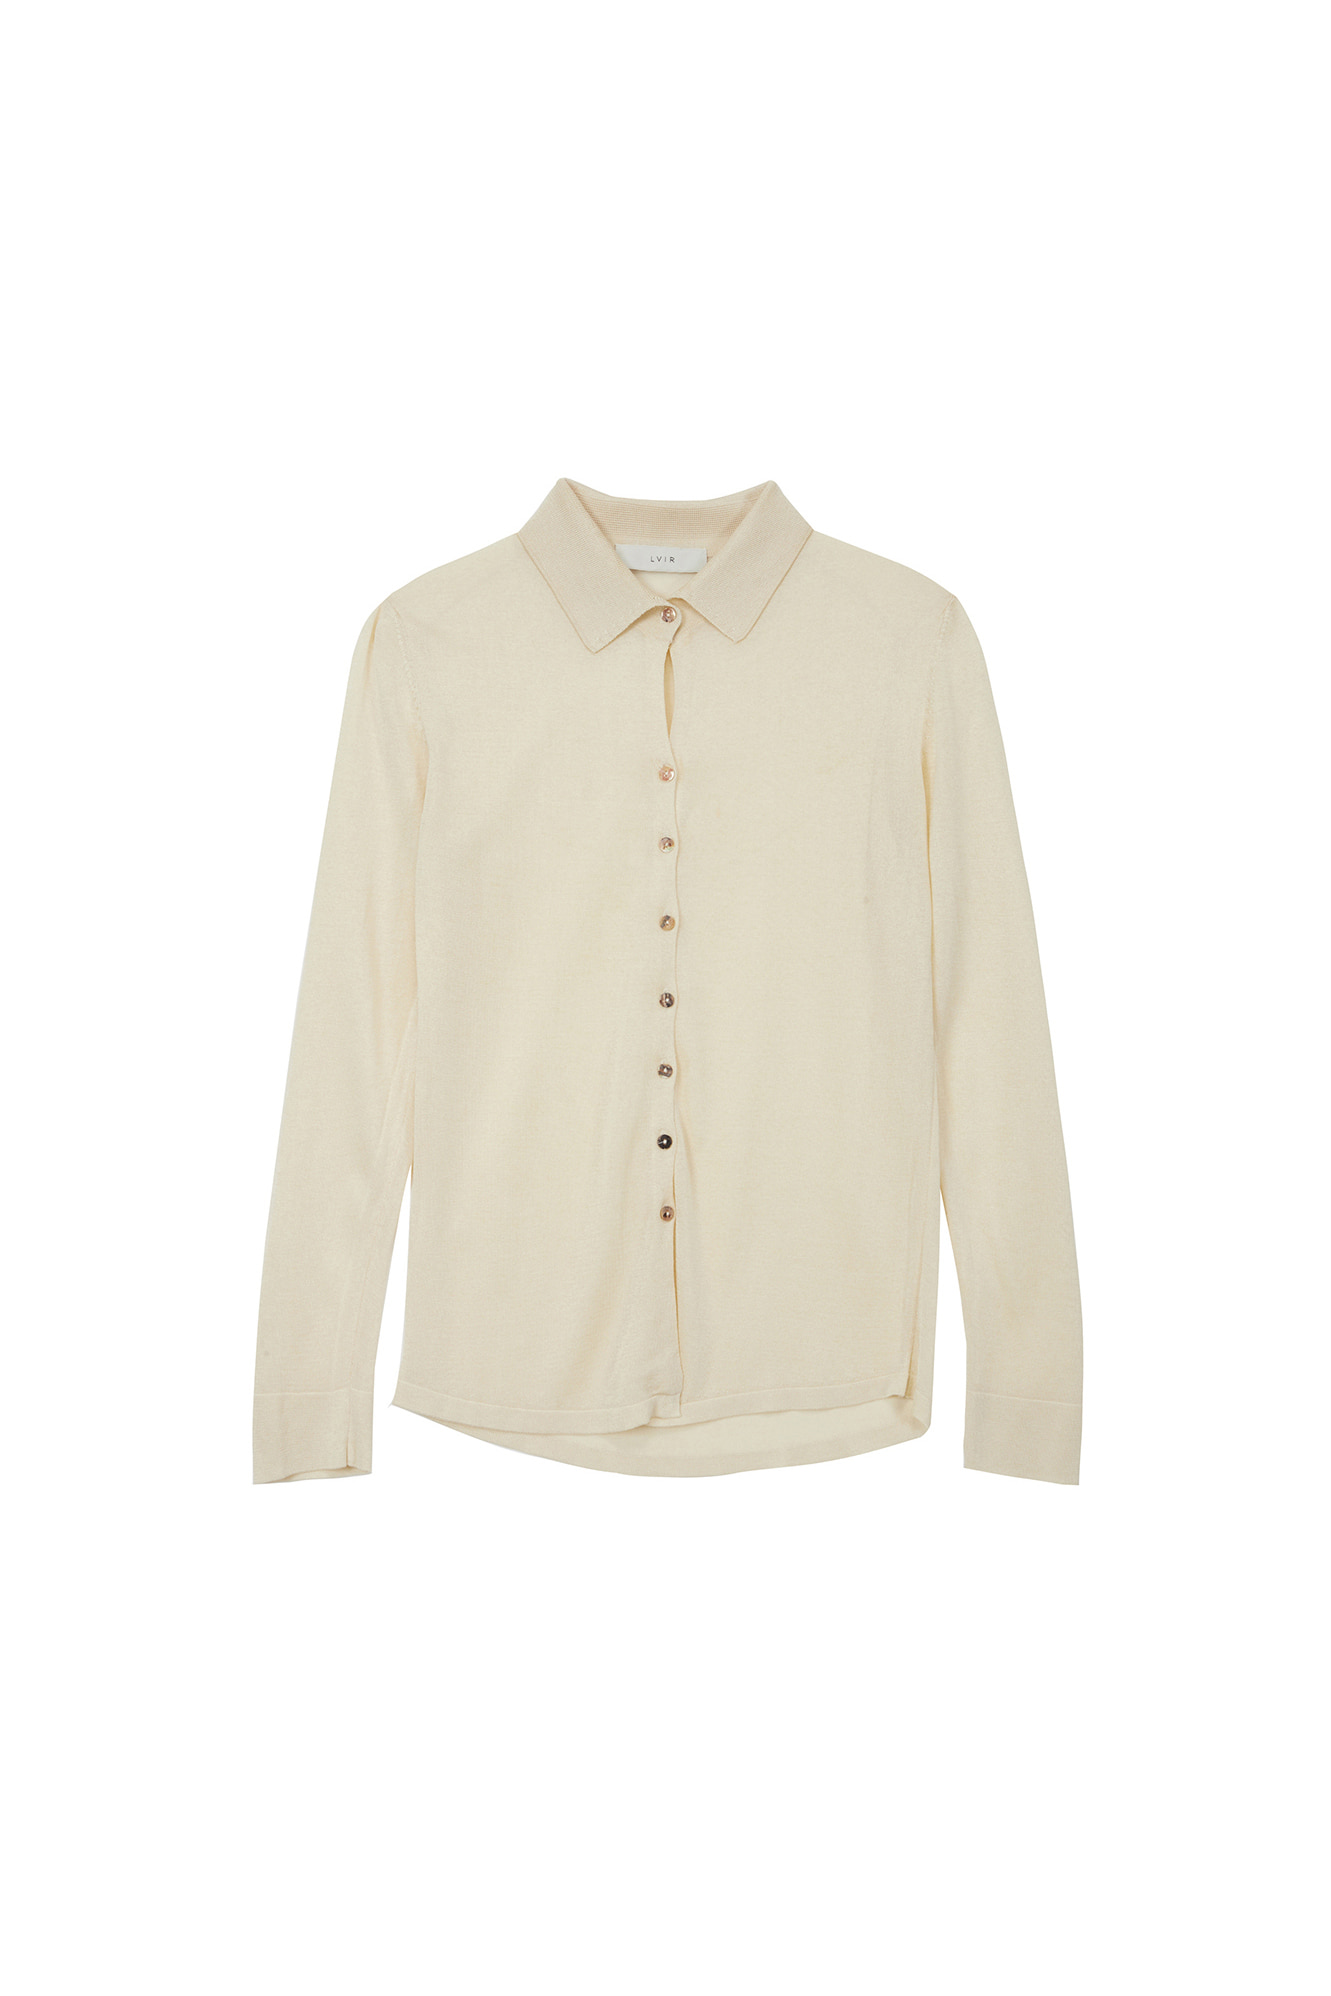 VISCOSE KNIT SHIRTS_LIGHT YELLOW